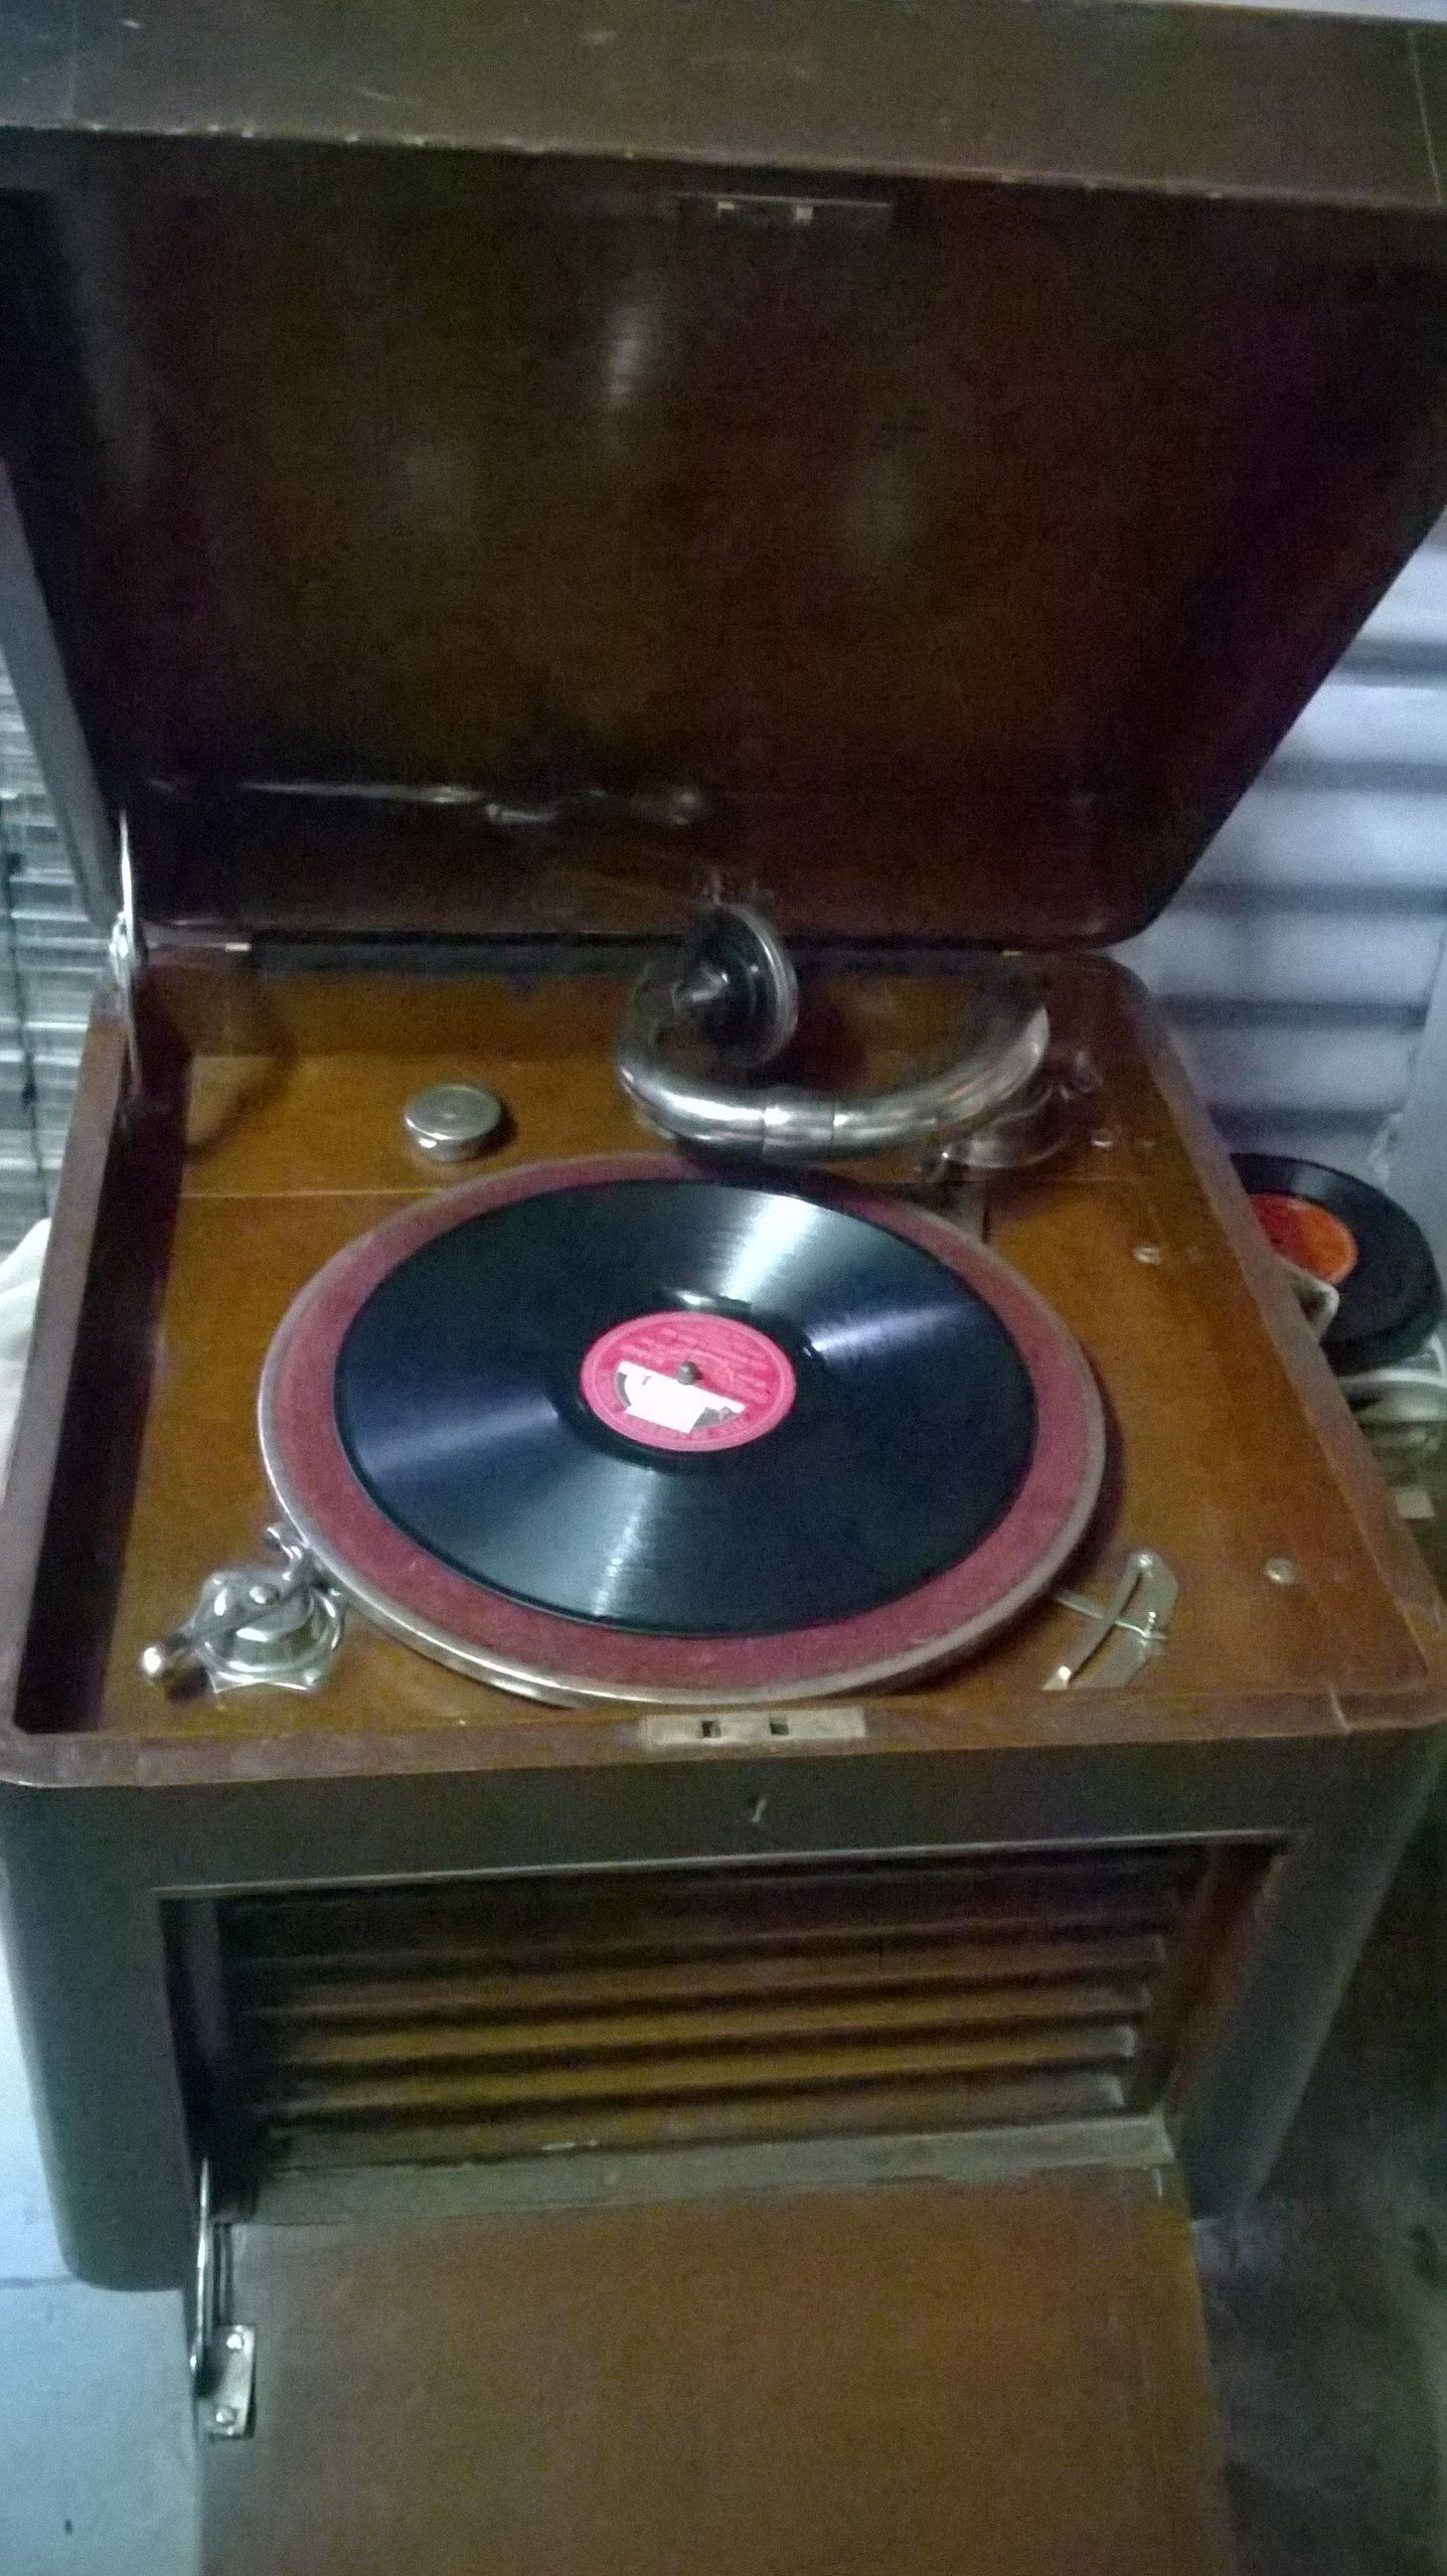 BAND MASTER RARE HUGE MANUAL GRAMOPHONE WITH 78 RPM SPEED FOR VINYLS